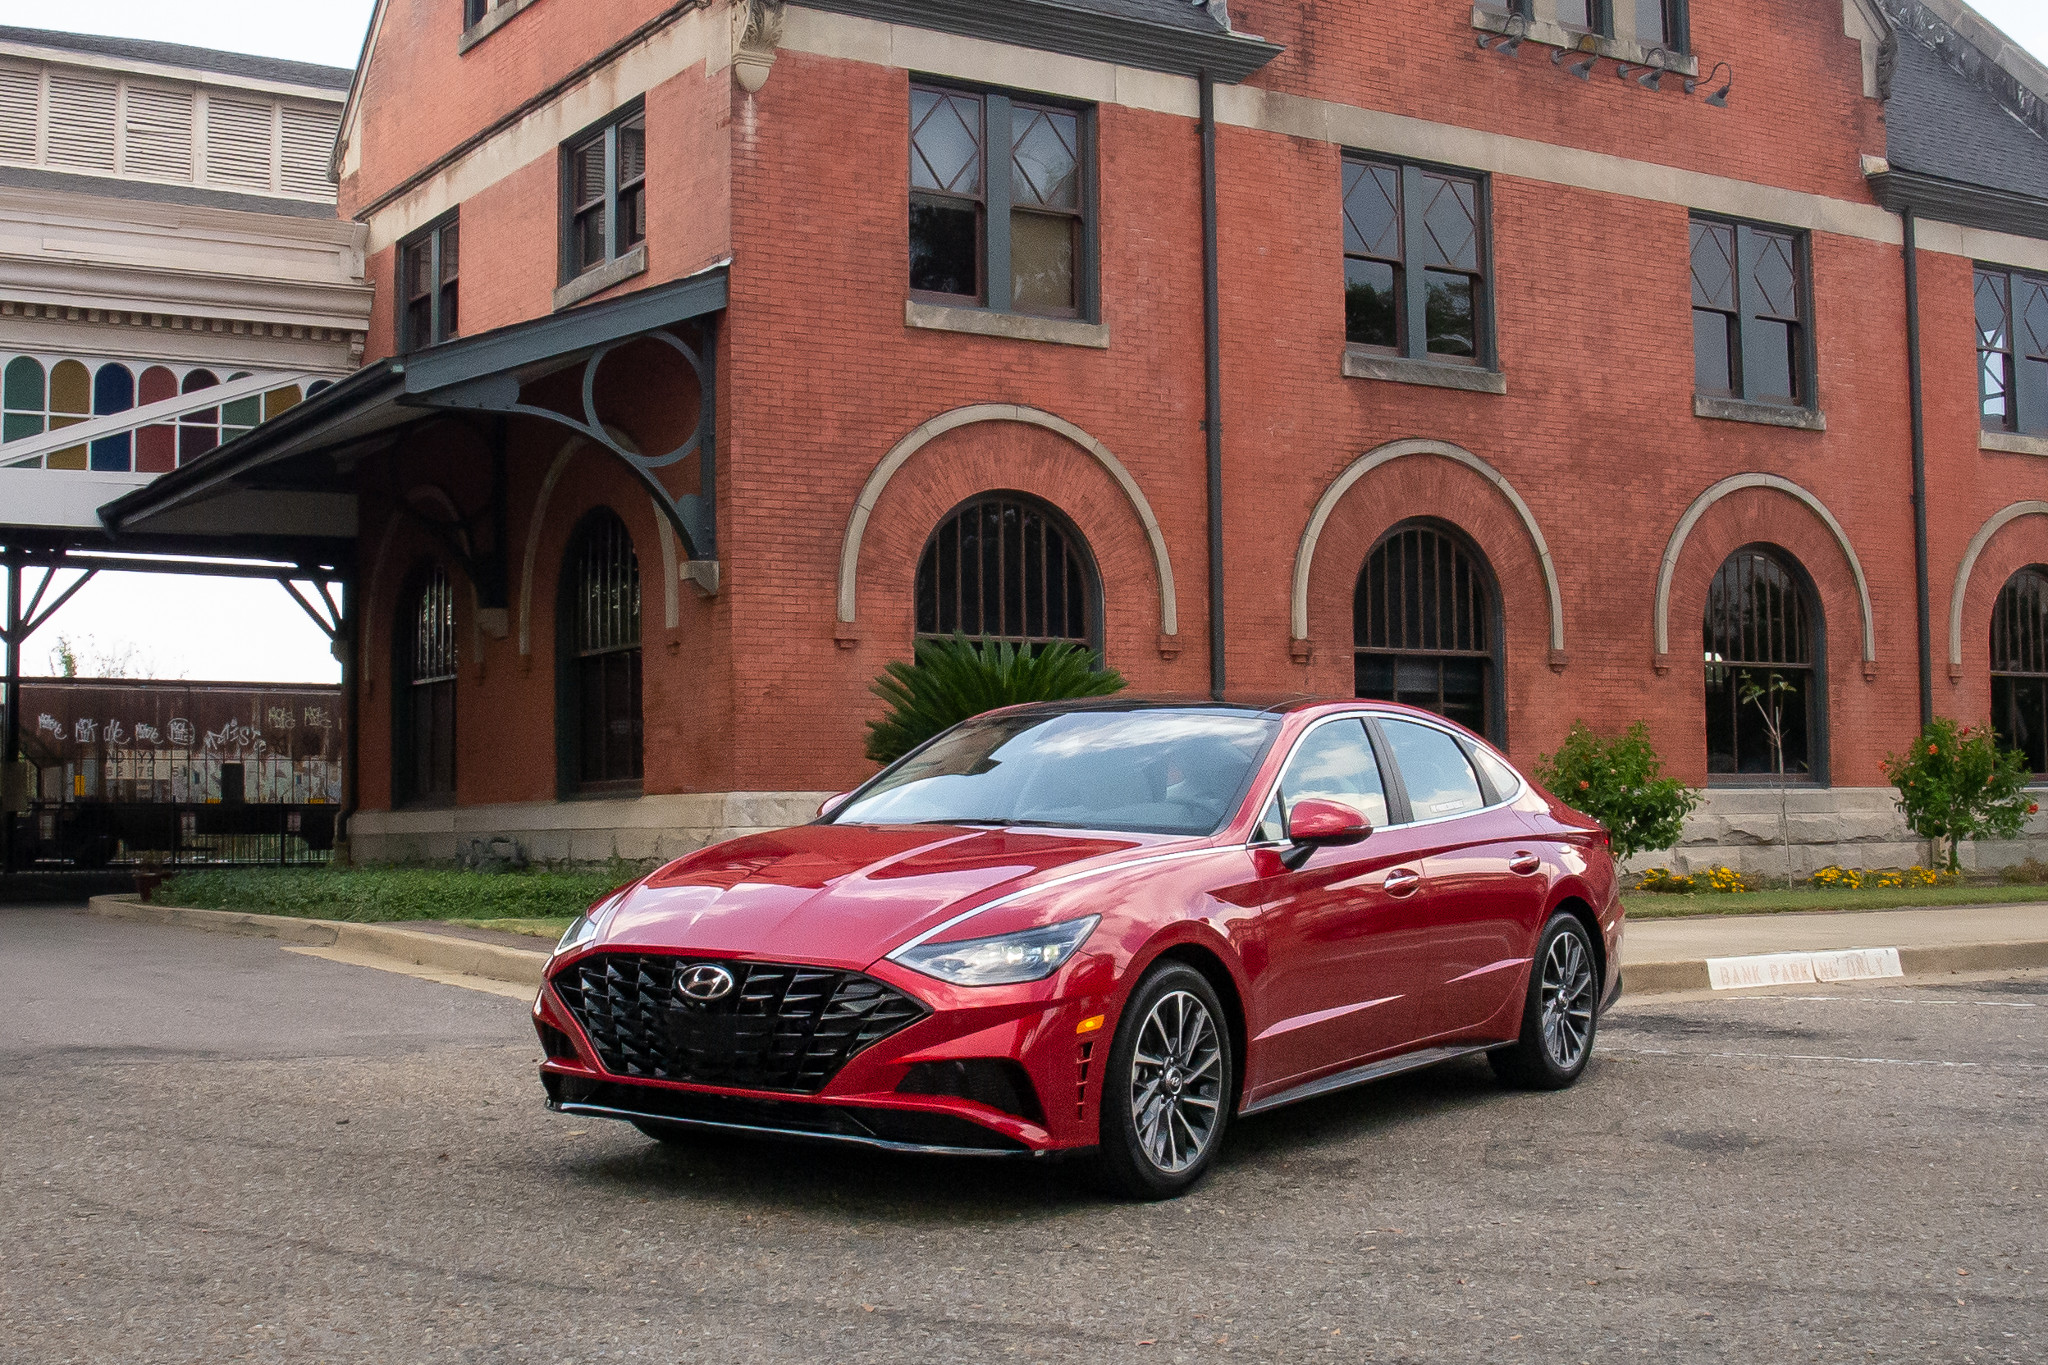 2020 Hyundai Sonata Review: Not Out of the Game